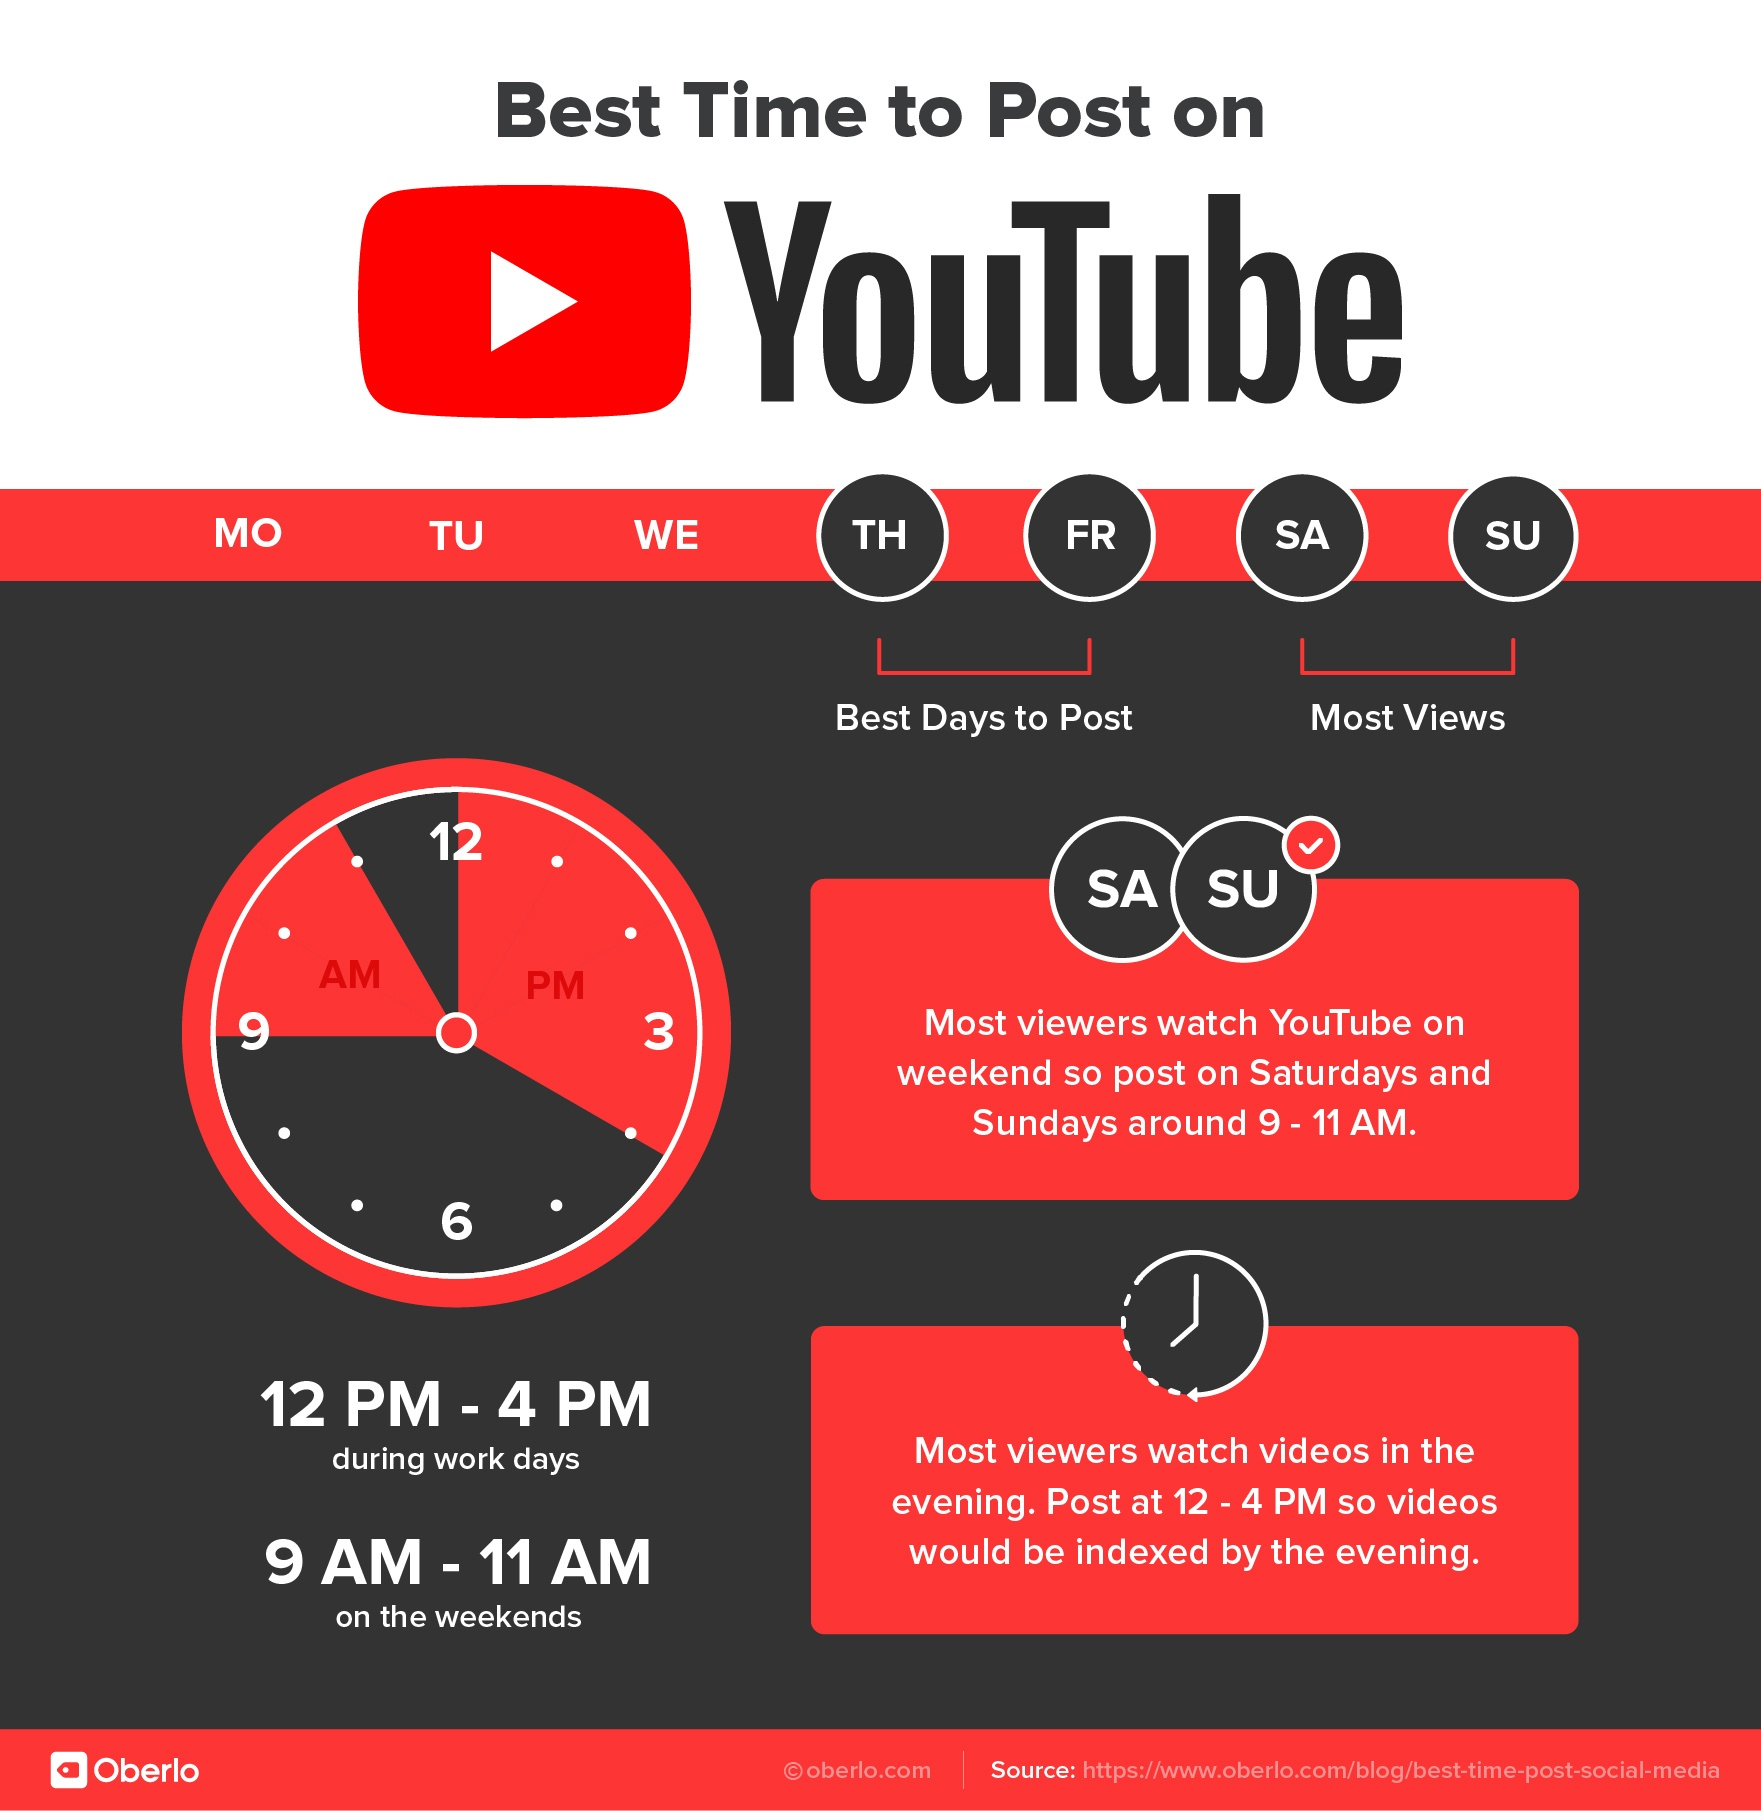 The best time to post on Youtube is during the nights and weekend